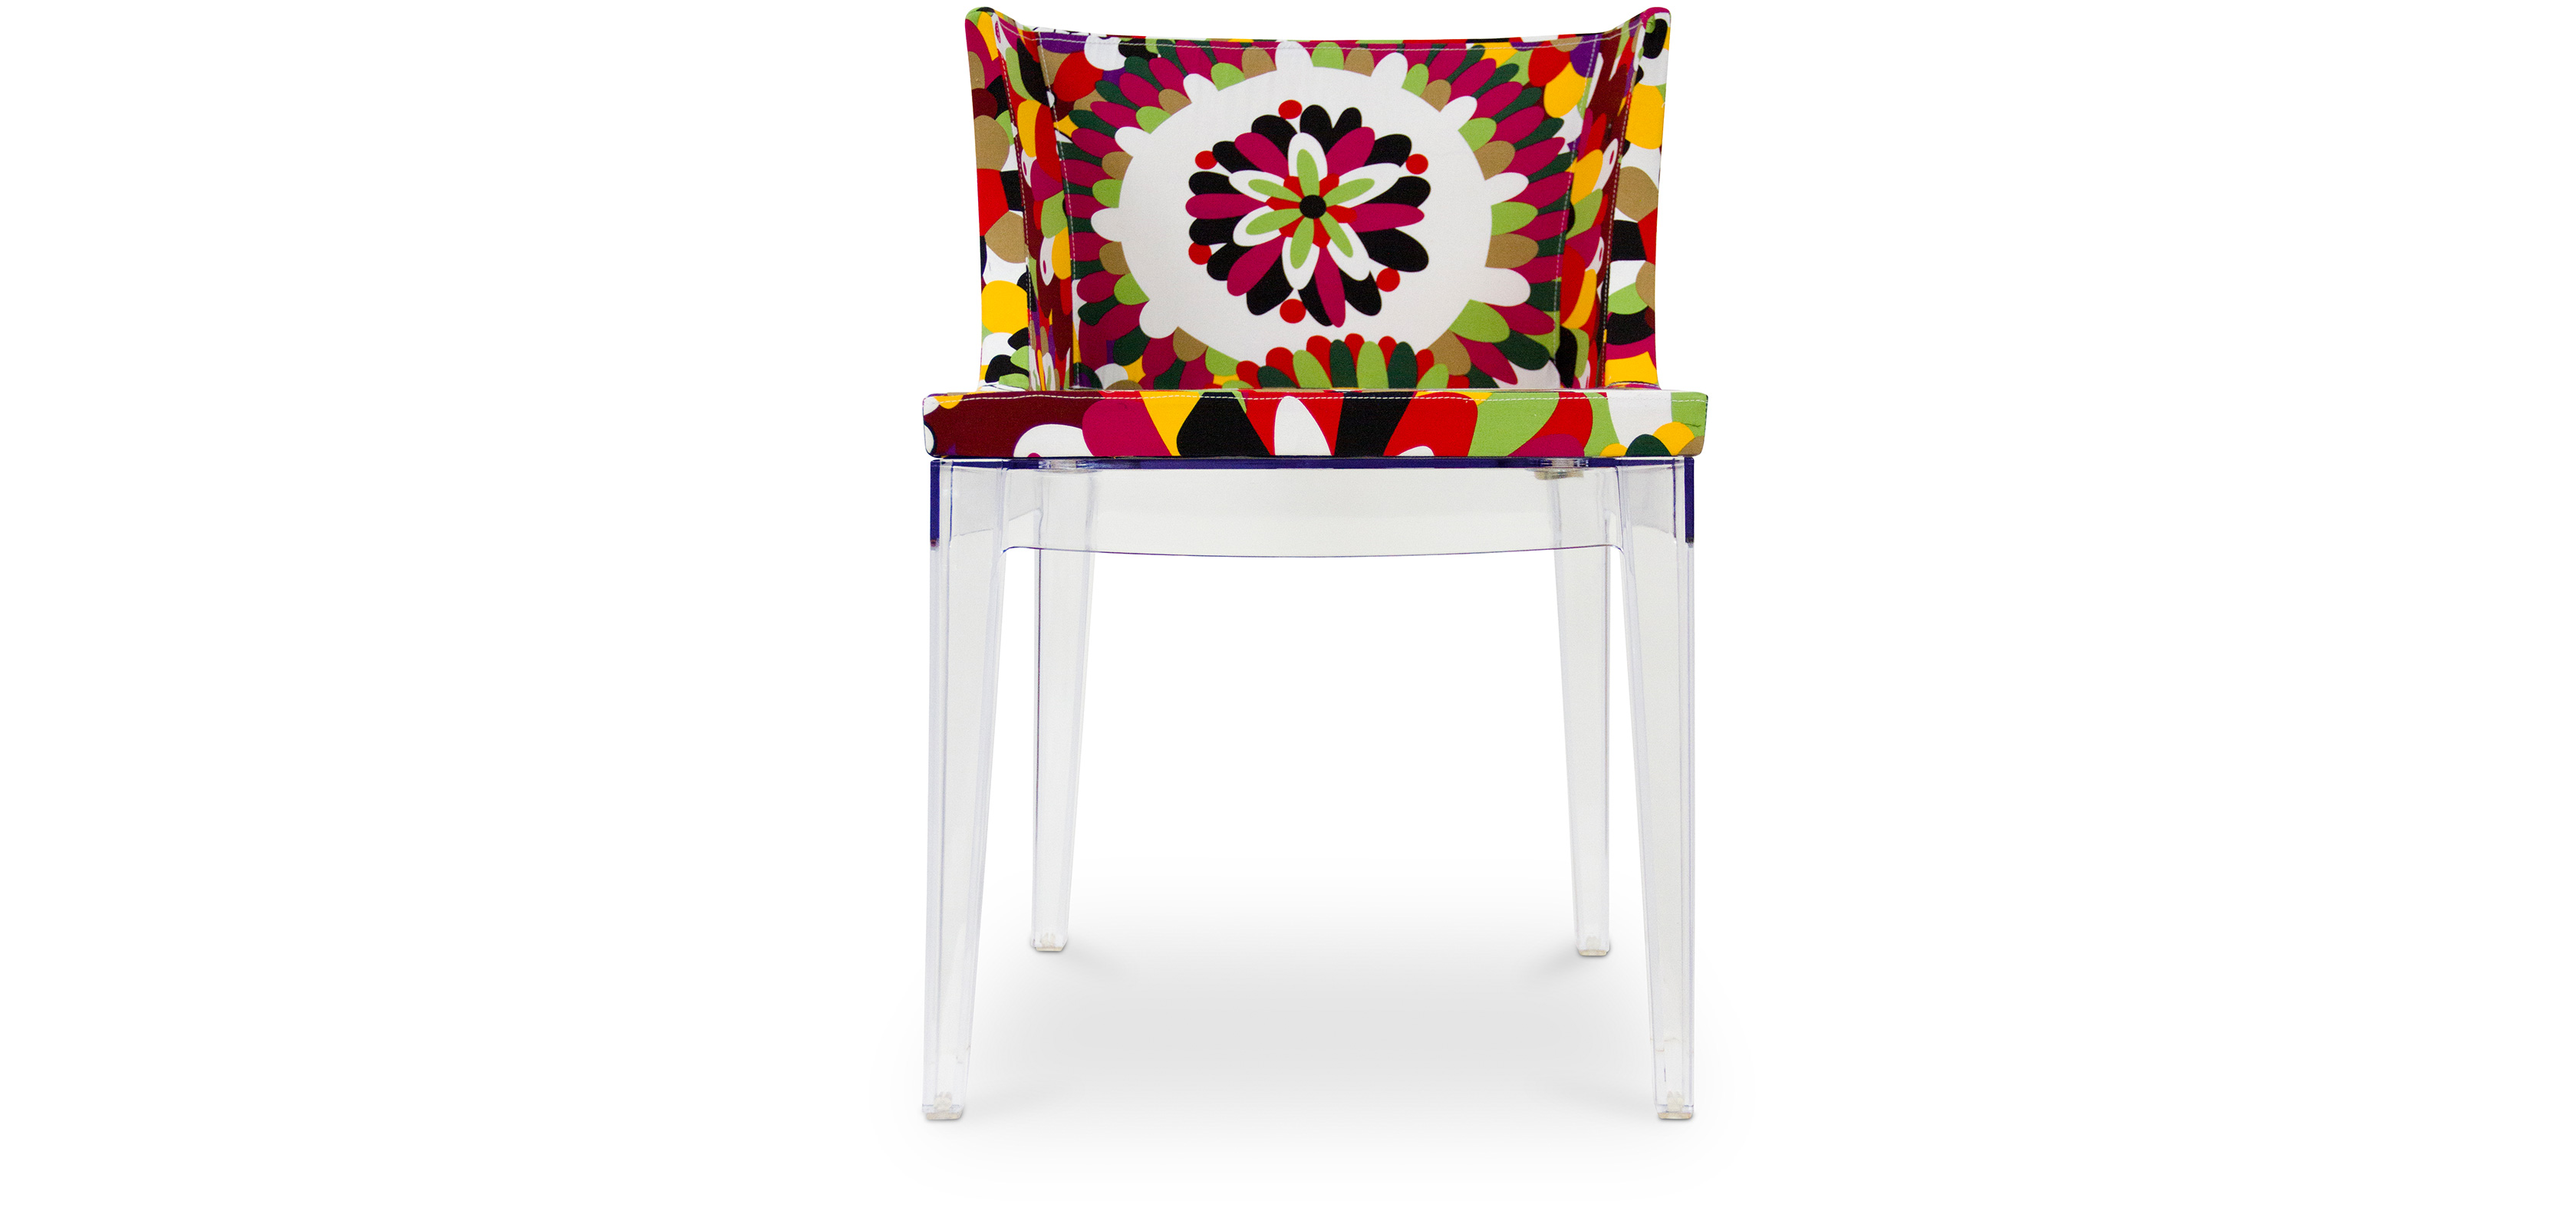 mademoiselle chair philippe starck